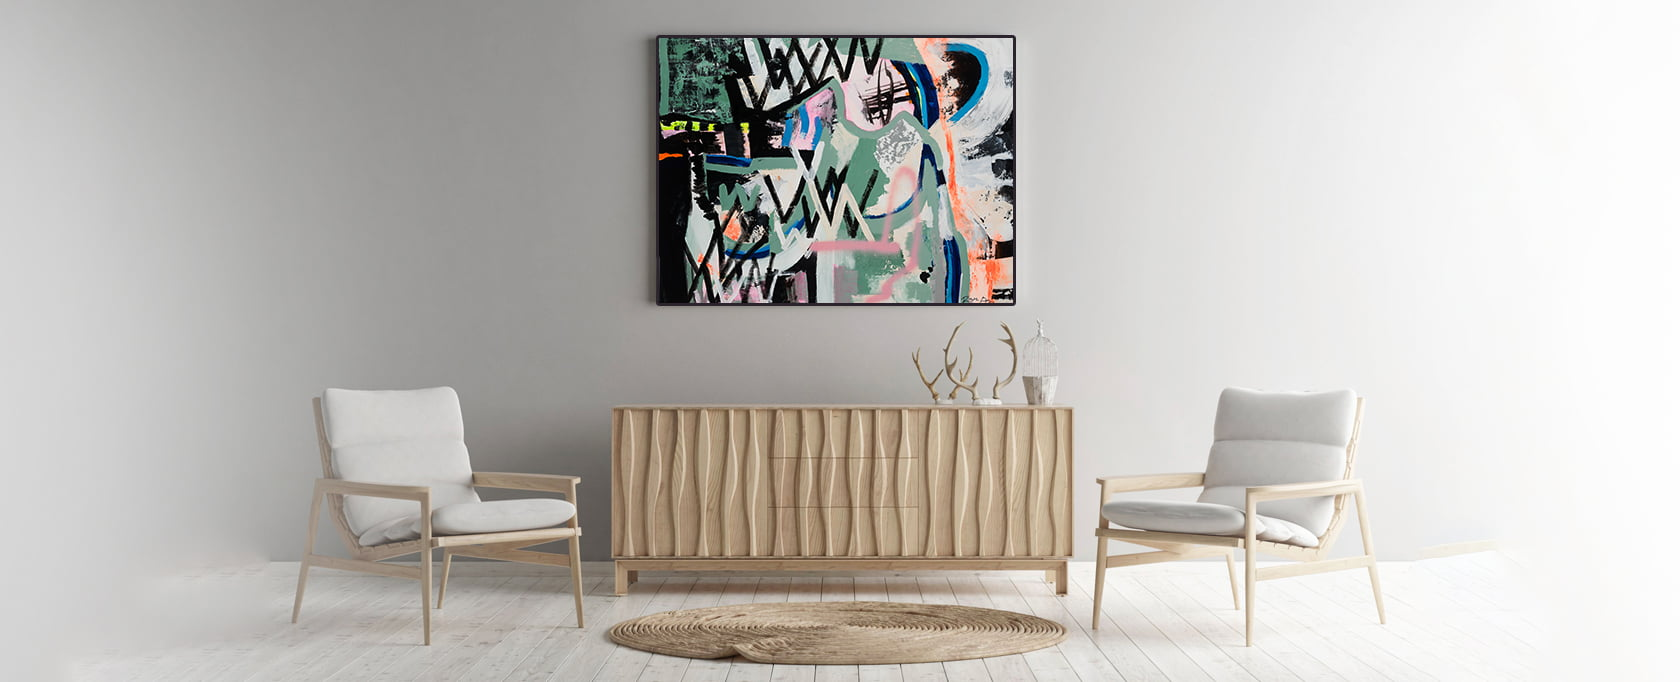 Hottest trends in wall decor and modern art for 2021